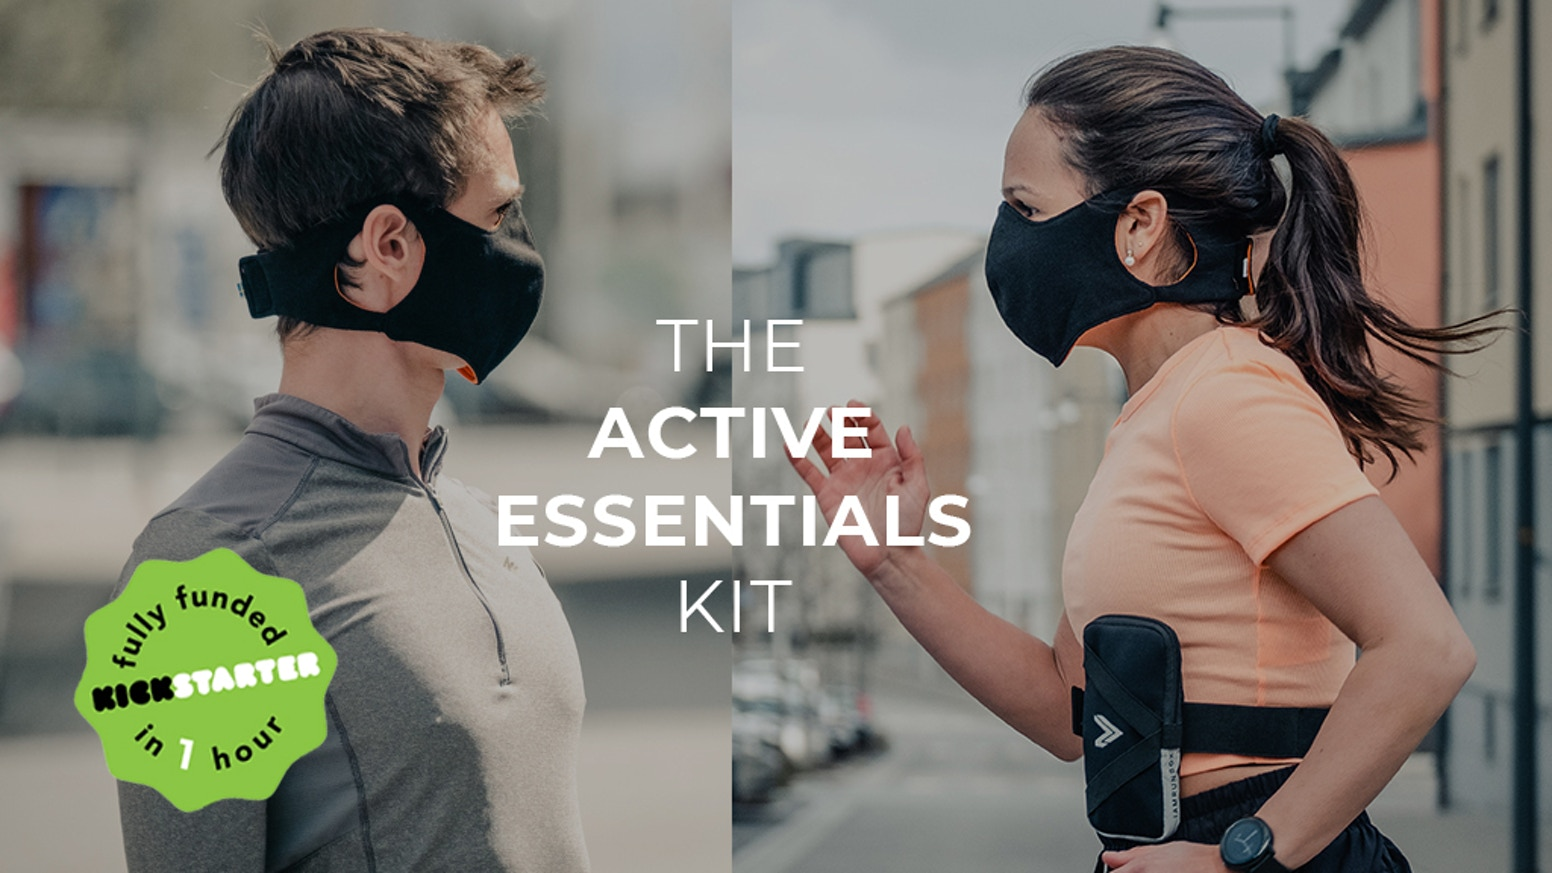 A premium multi-wear, sustainable, protective kit to make your daily routine more active, enjoyable and safe - at all times.